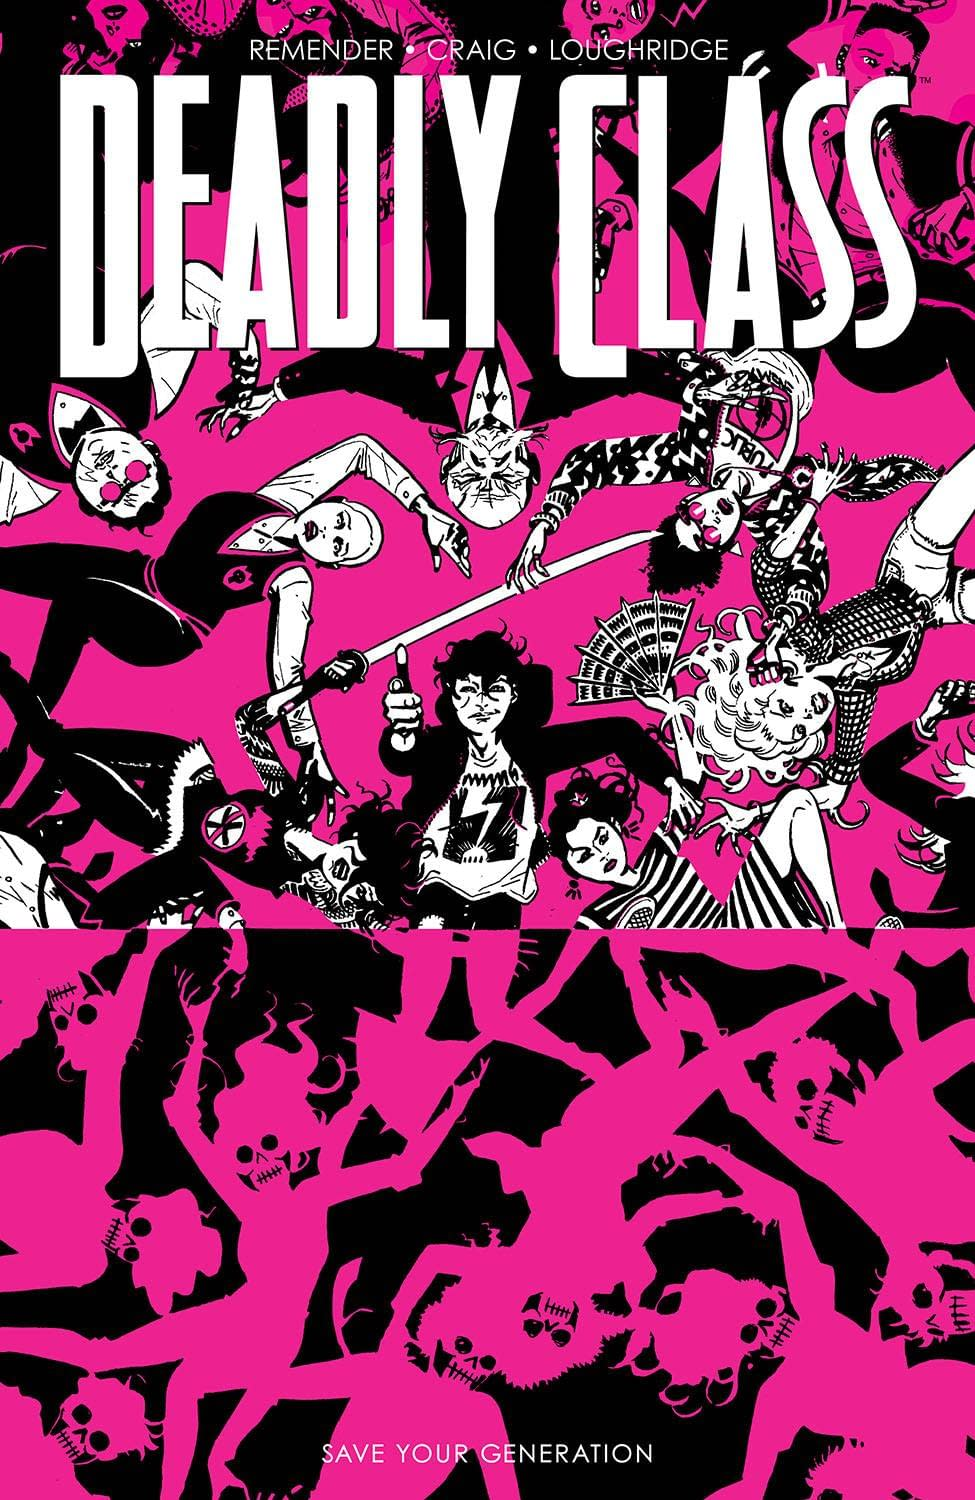 DEADLY CLASS TP VOL 10 SAVE YOUR GENERATION (MR)